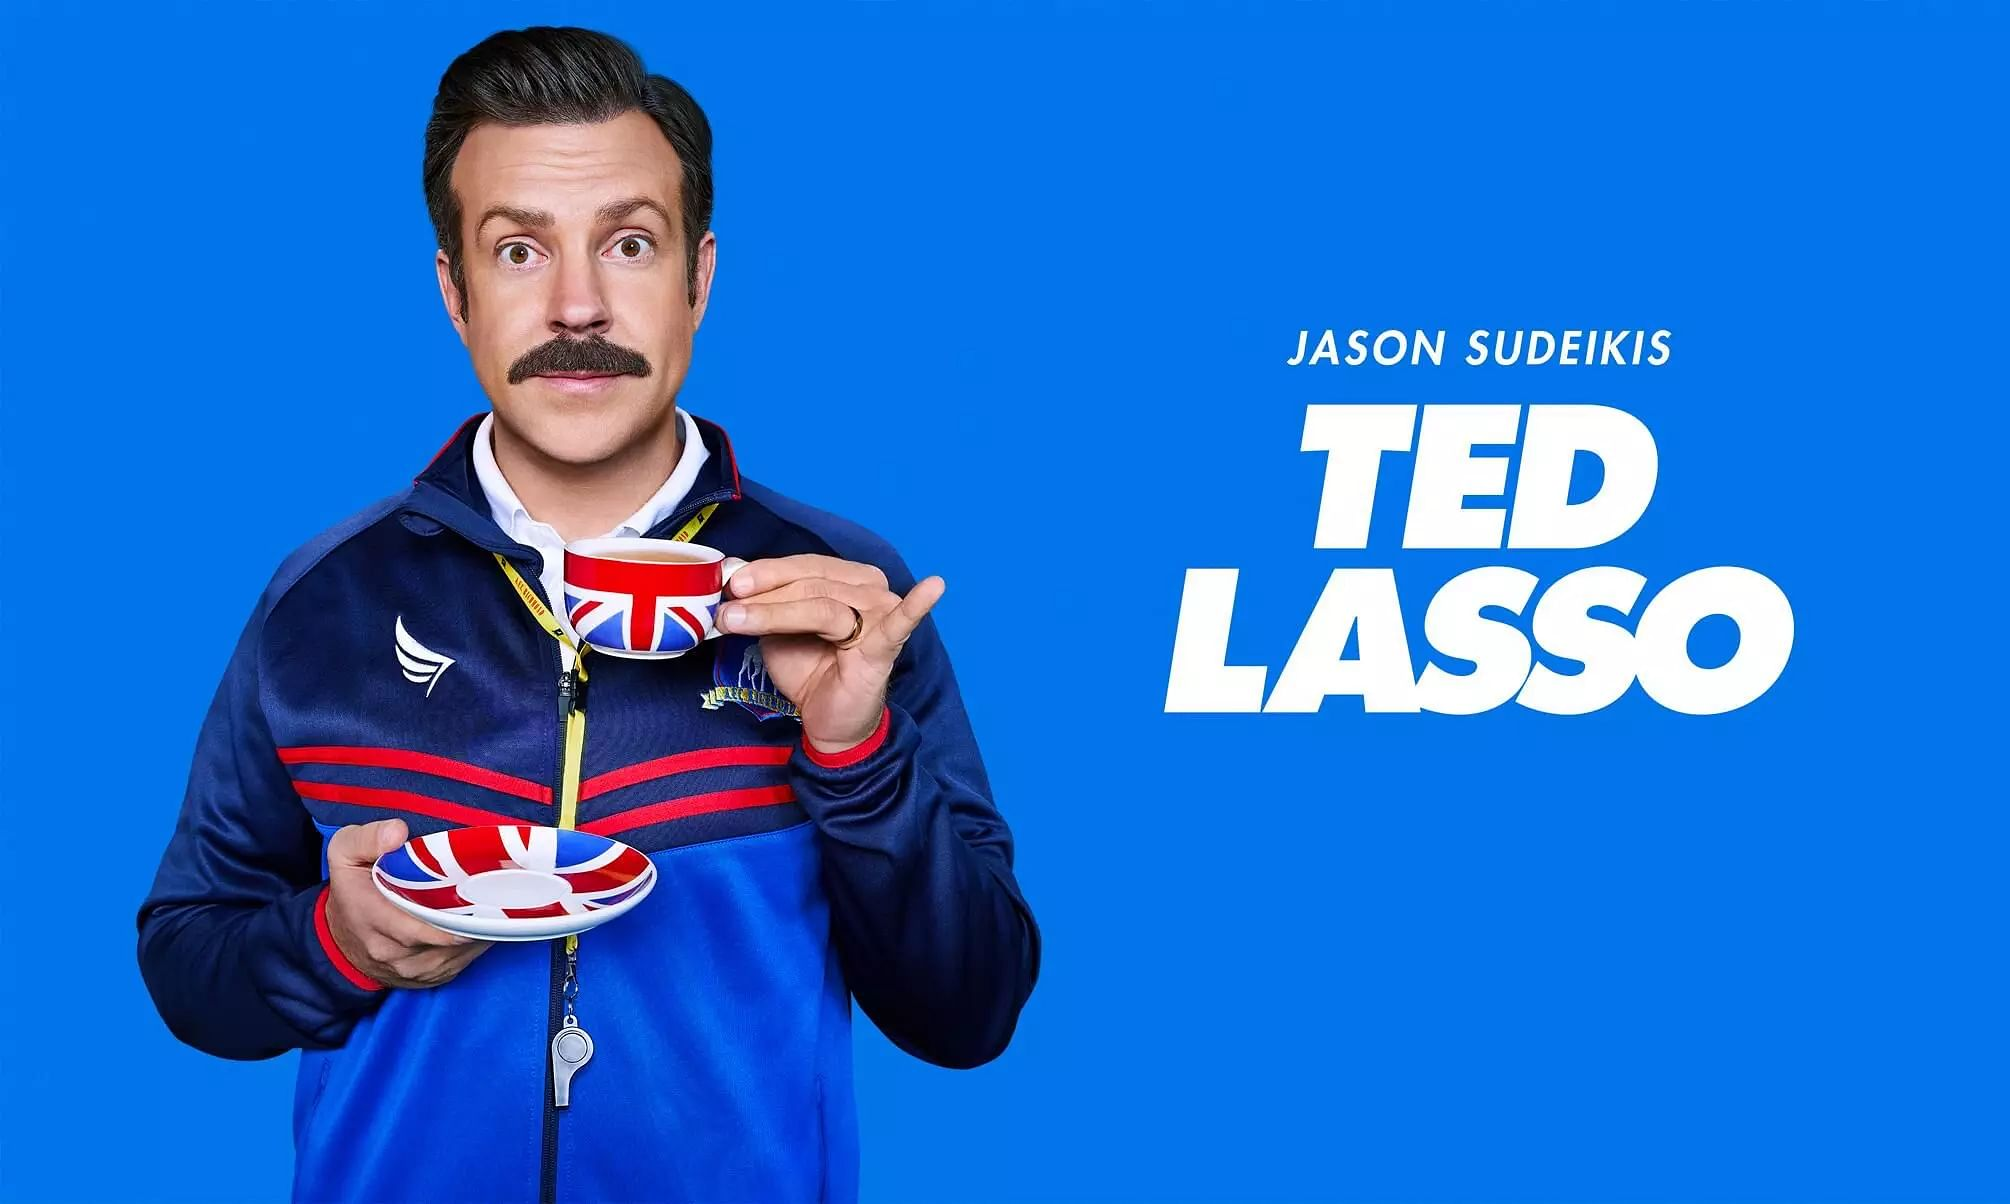 Excited To Watch Ted Lasso? Heres All You Need To Know About The Emmy Award-Winning Comedy Show